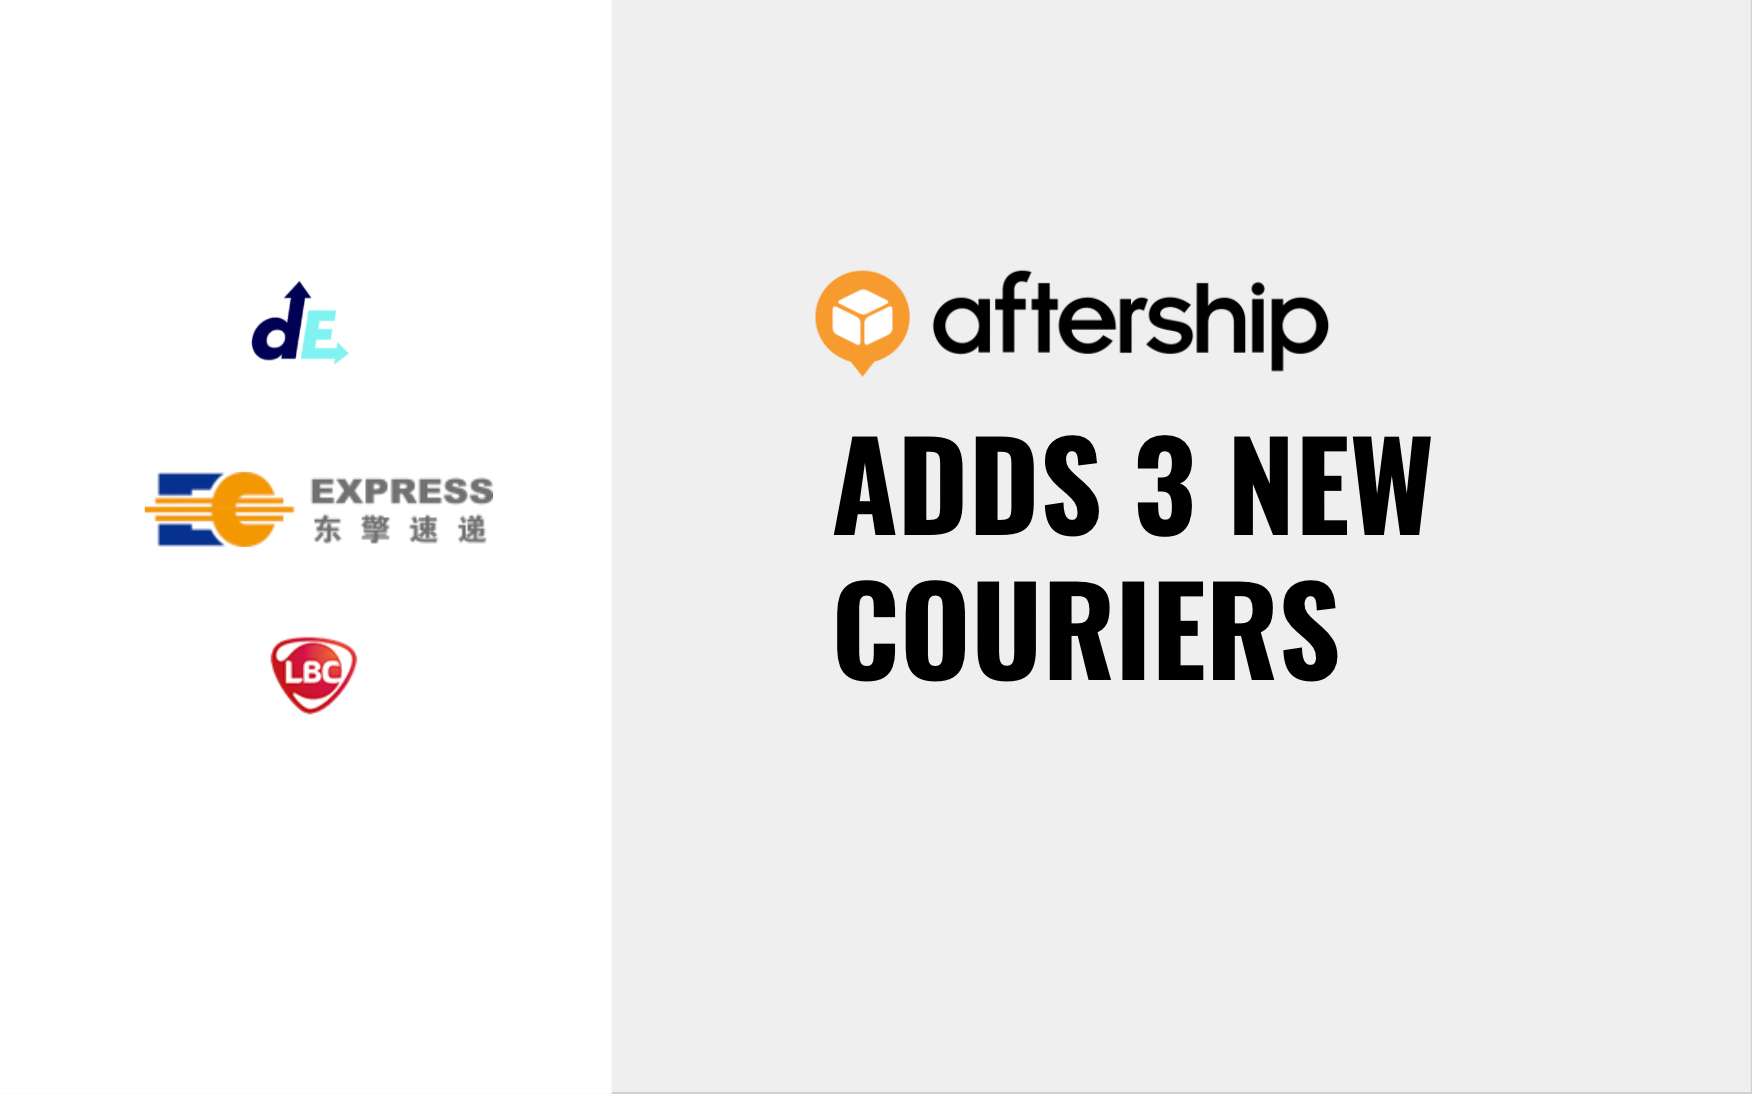 AfterShip adds 3 new couriers between 28th June 2021 and 11th July 2021